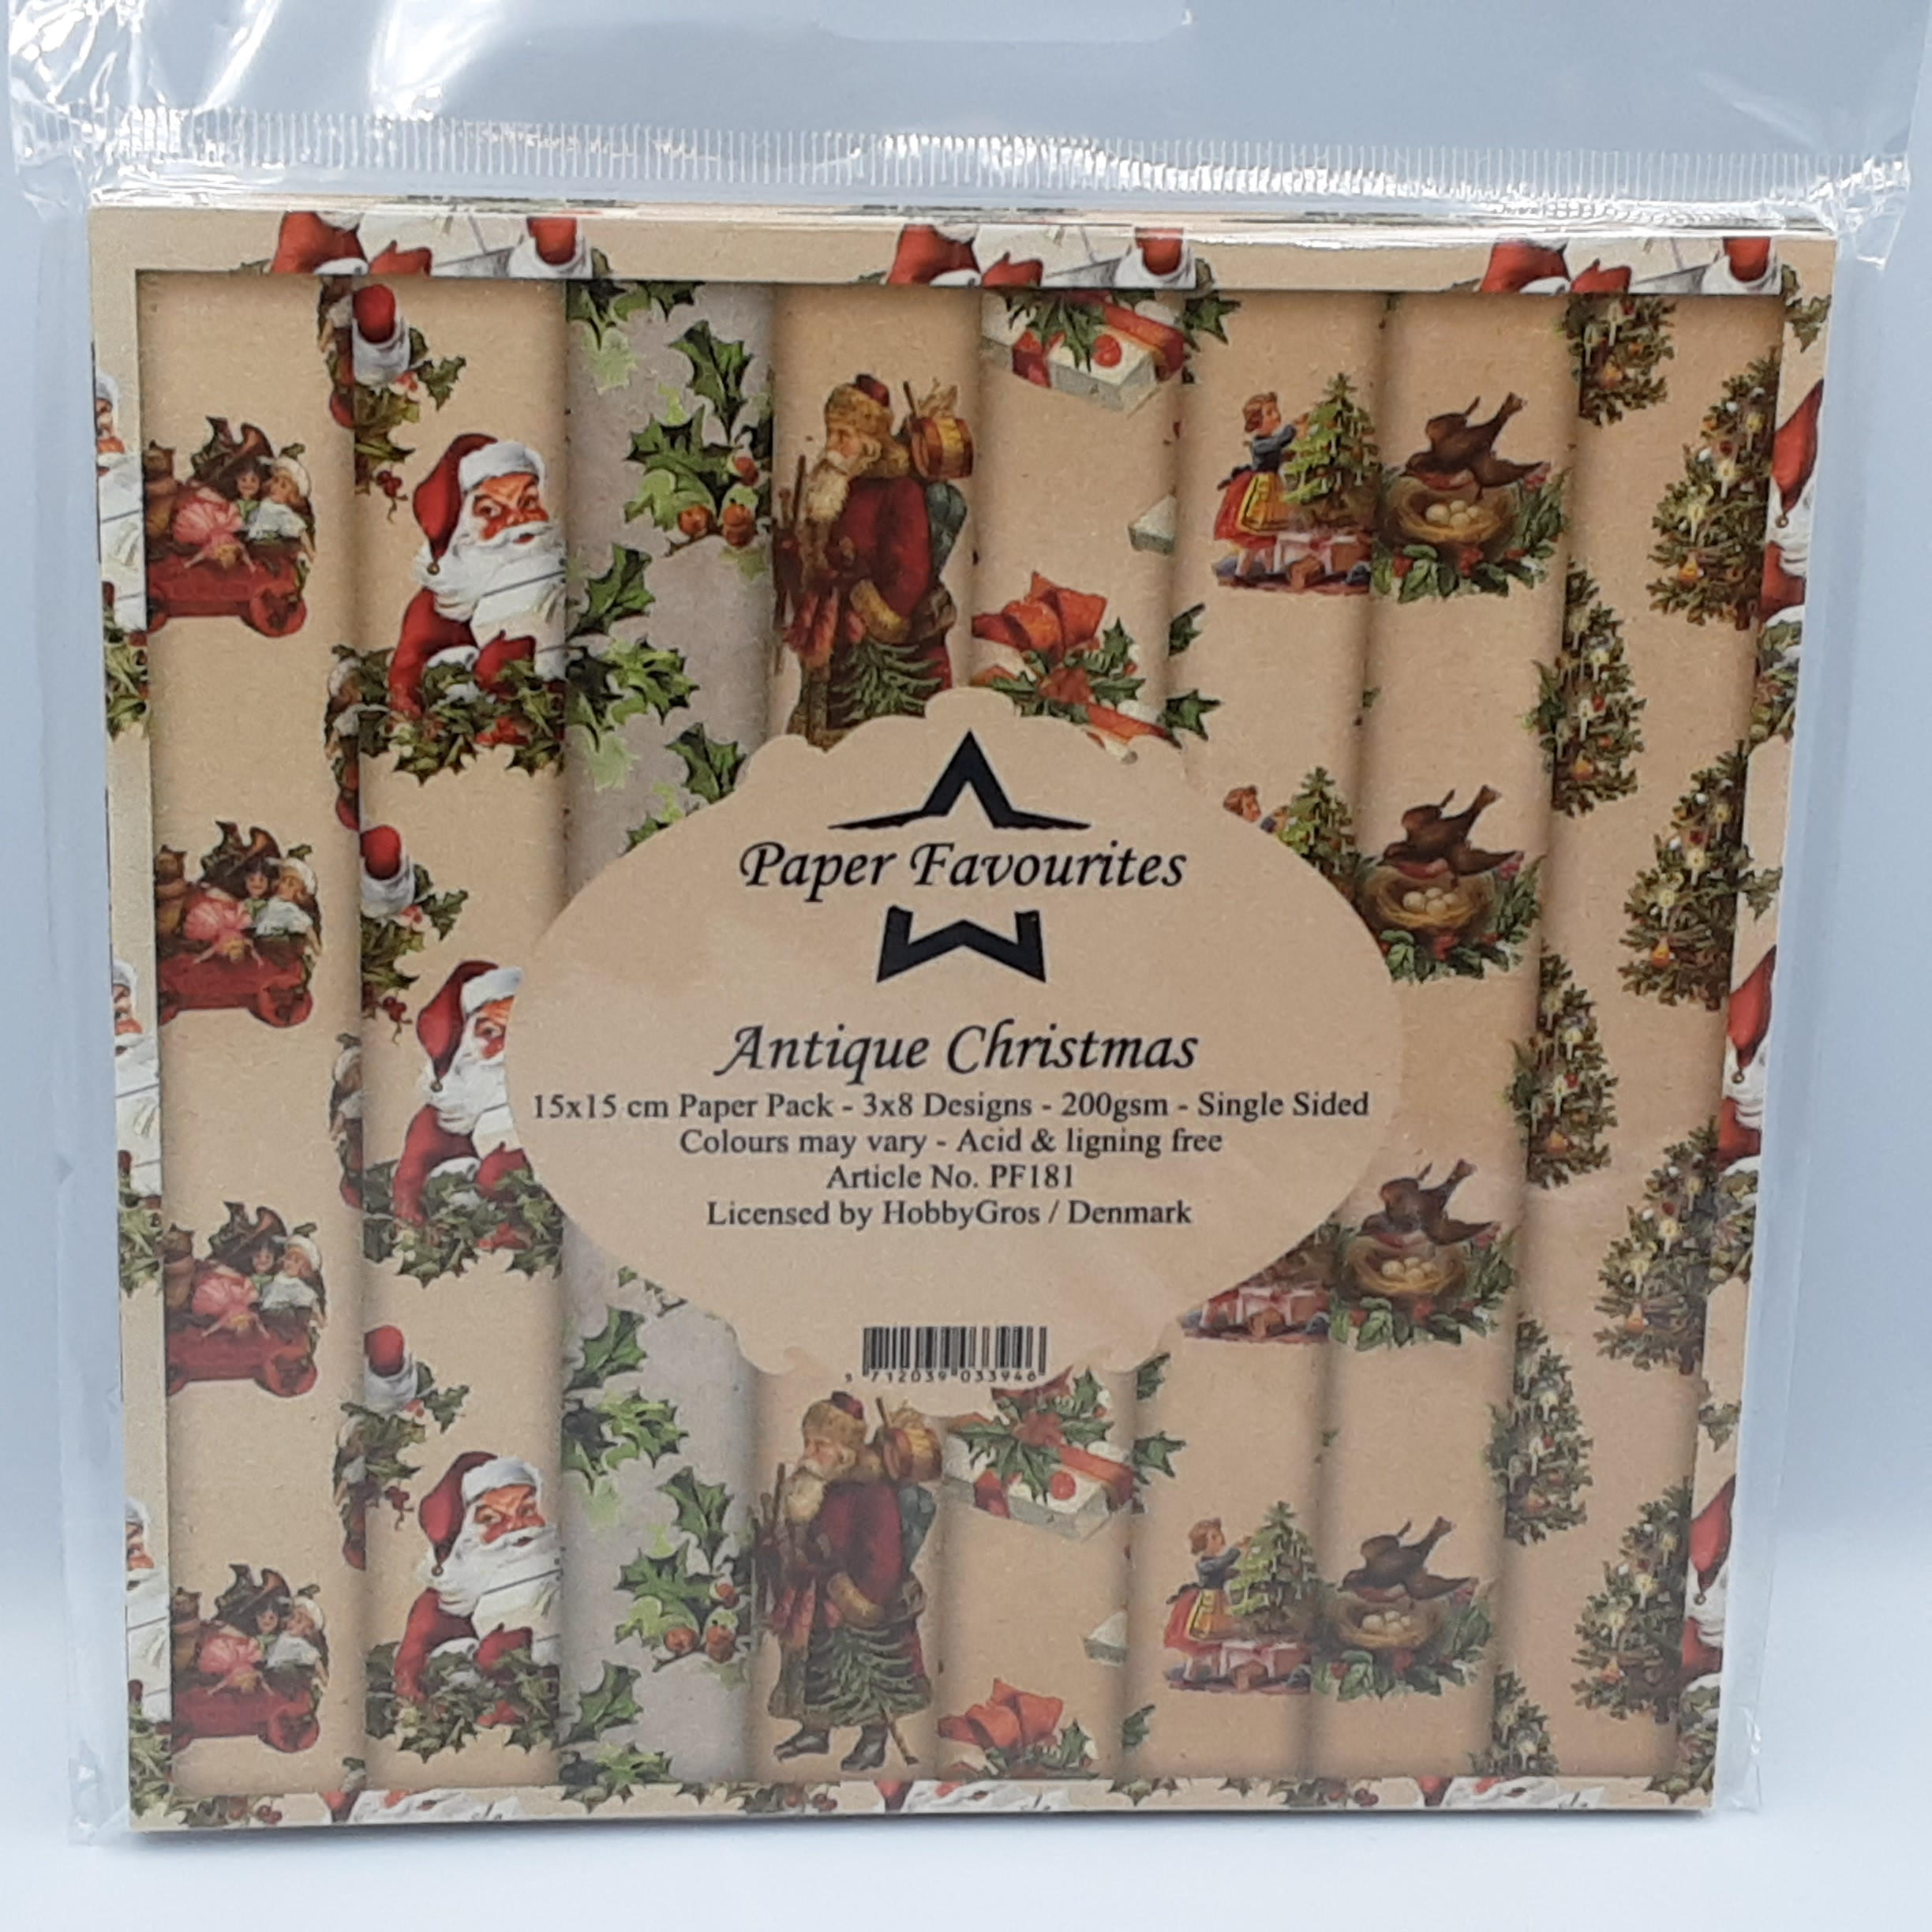 Antique christmas paperpack